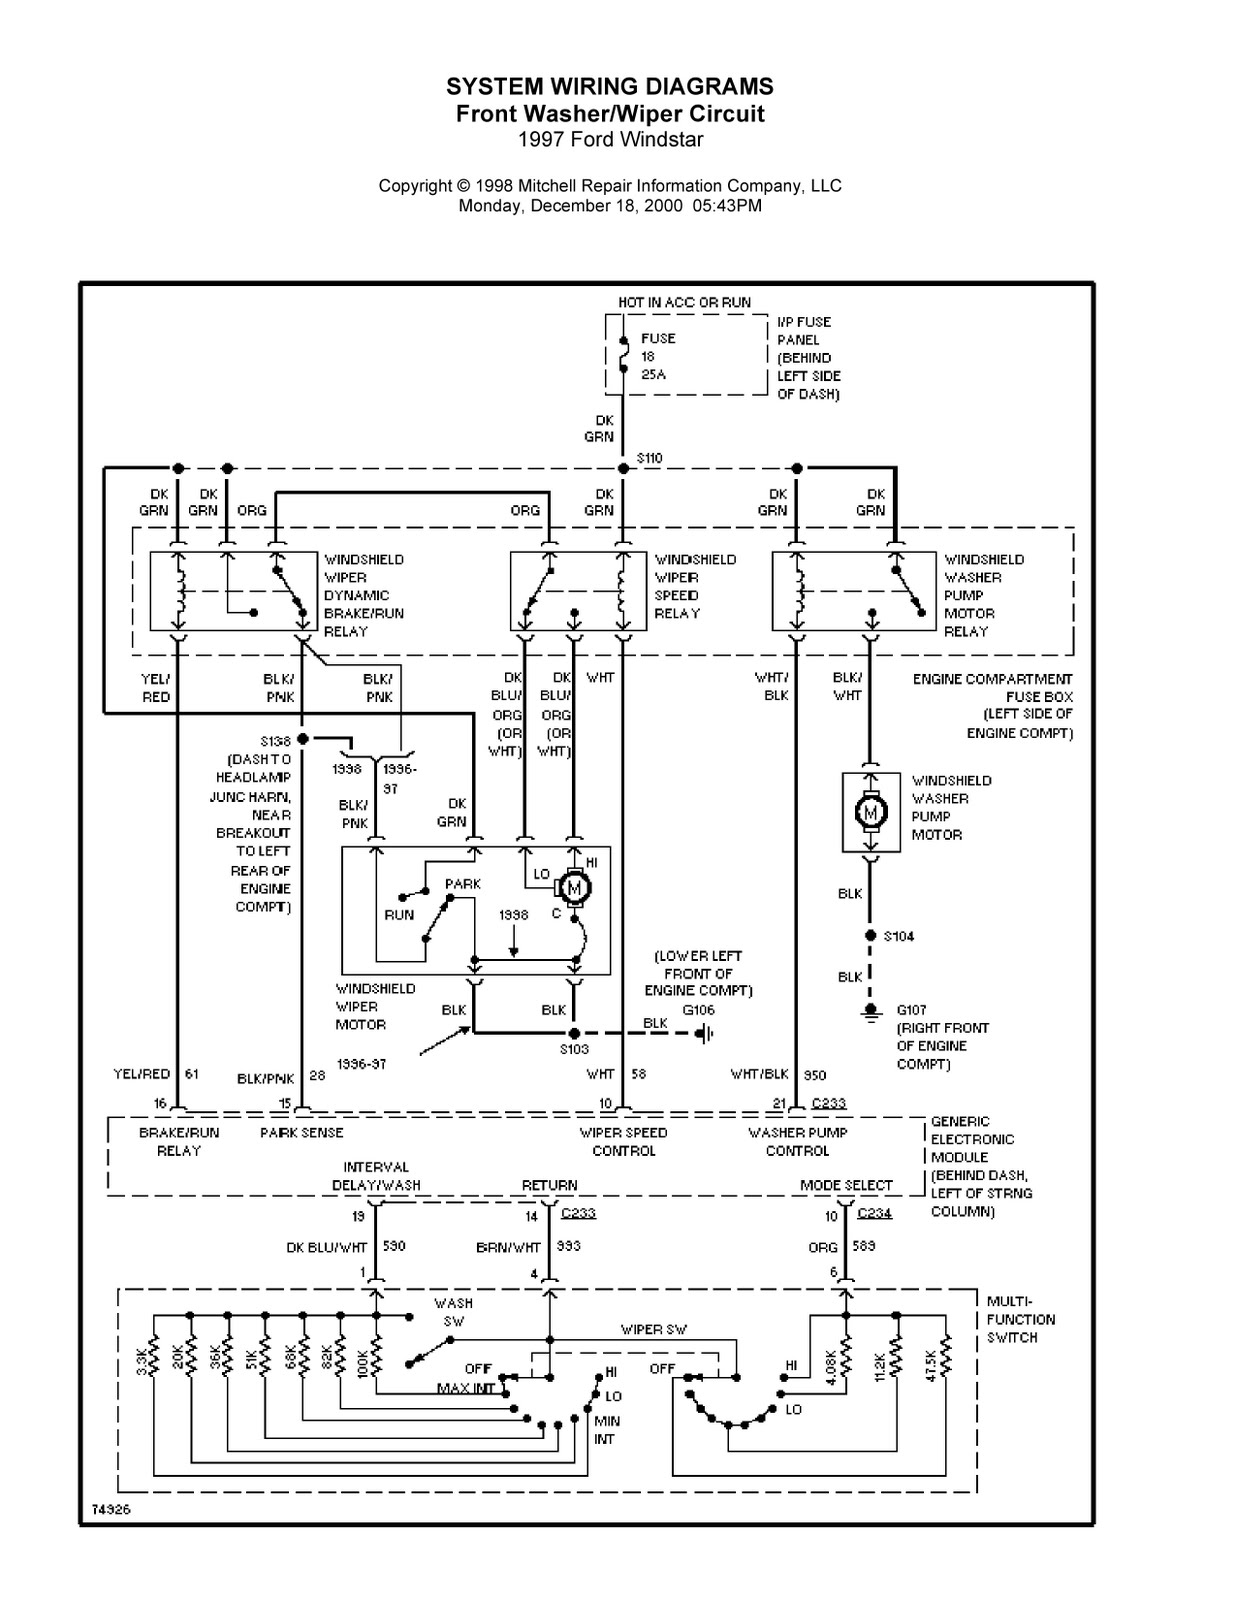 small resolution of 2002 windstar mirror wiring diagram wiring diagrams rh gregorywein co ford ranger 3 0 wiring